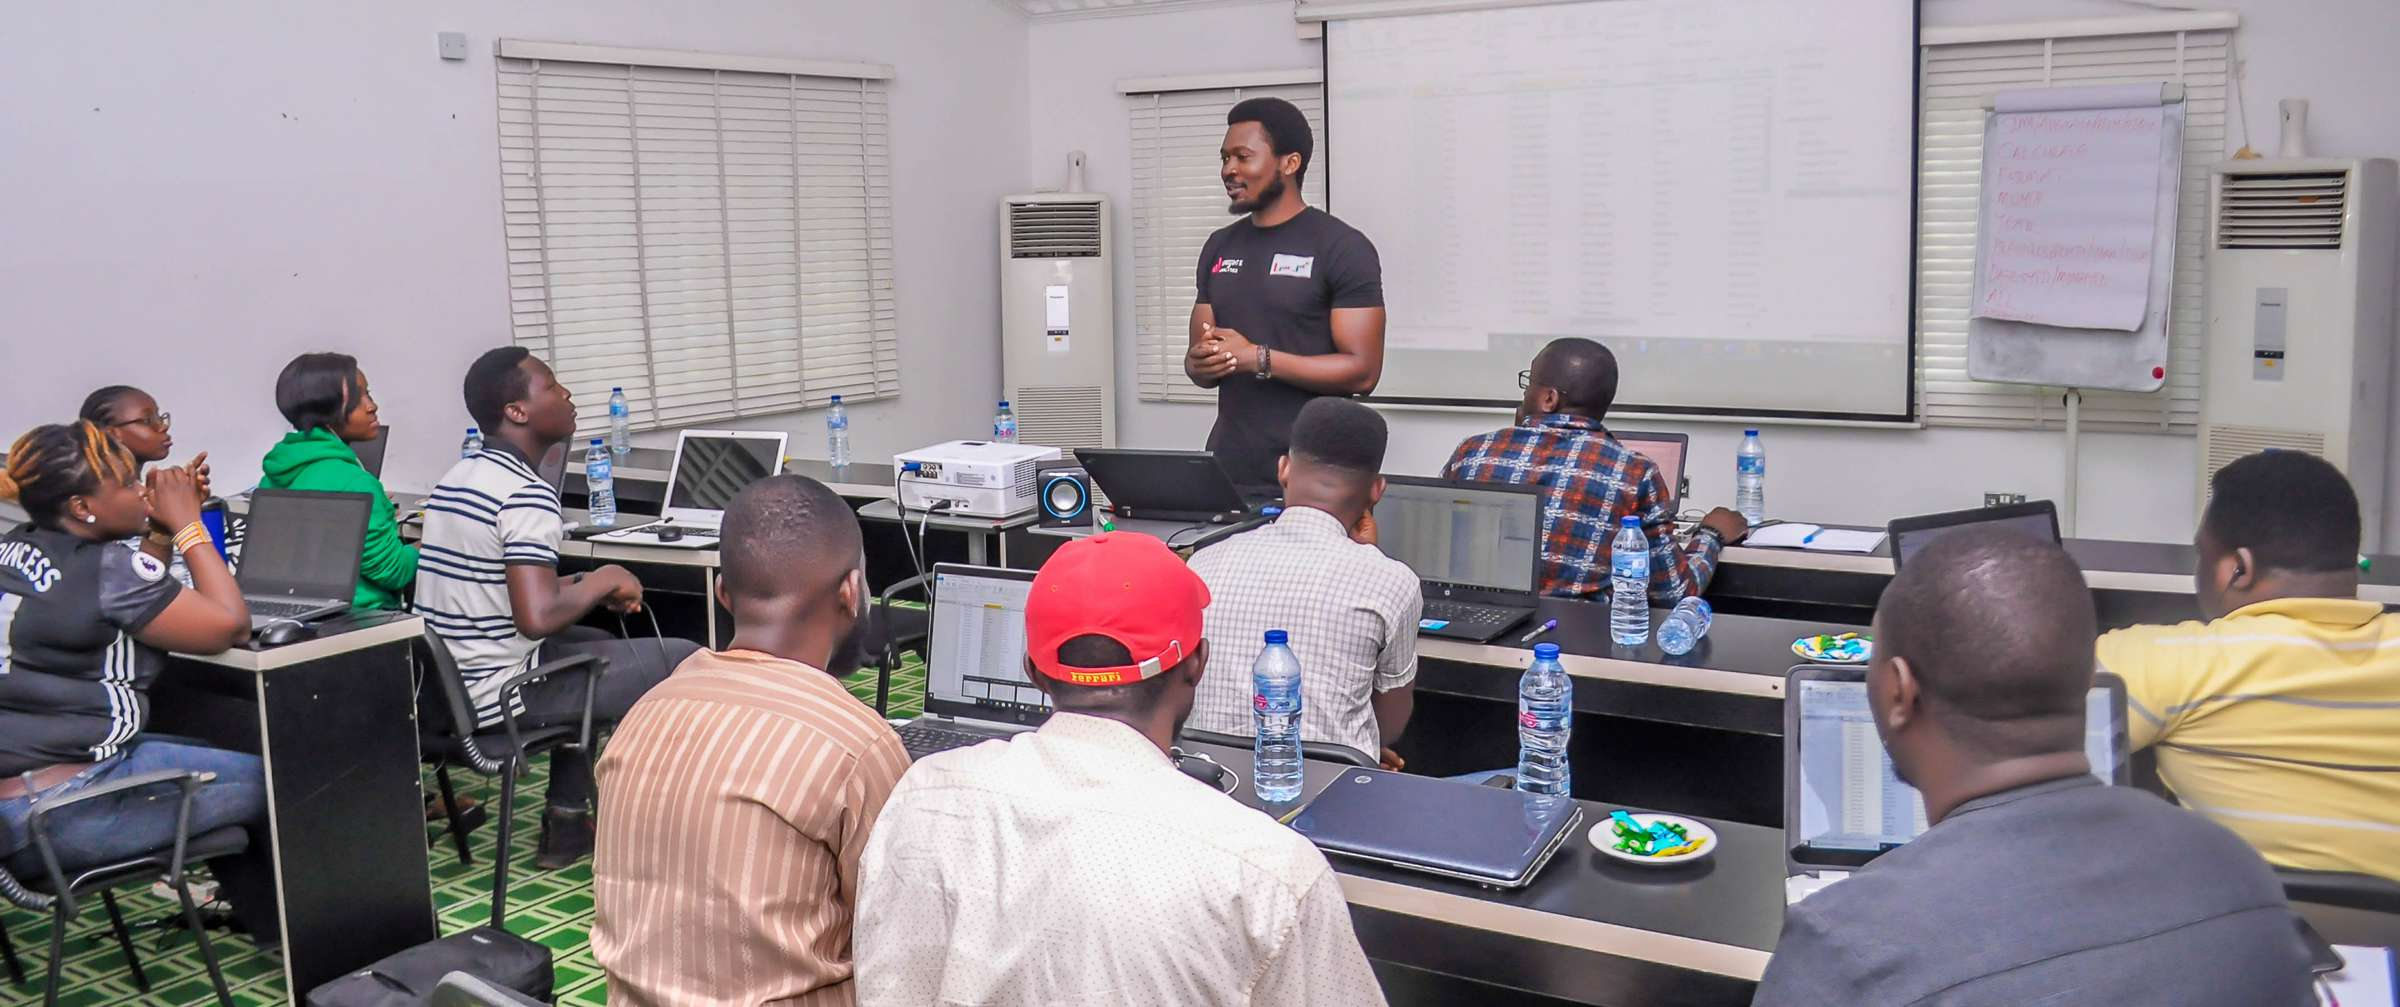 Power BI Bootcamp By Ahmad Oyelowo, in Foresight BI & Analytics